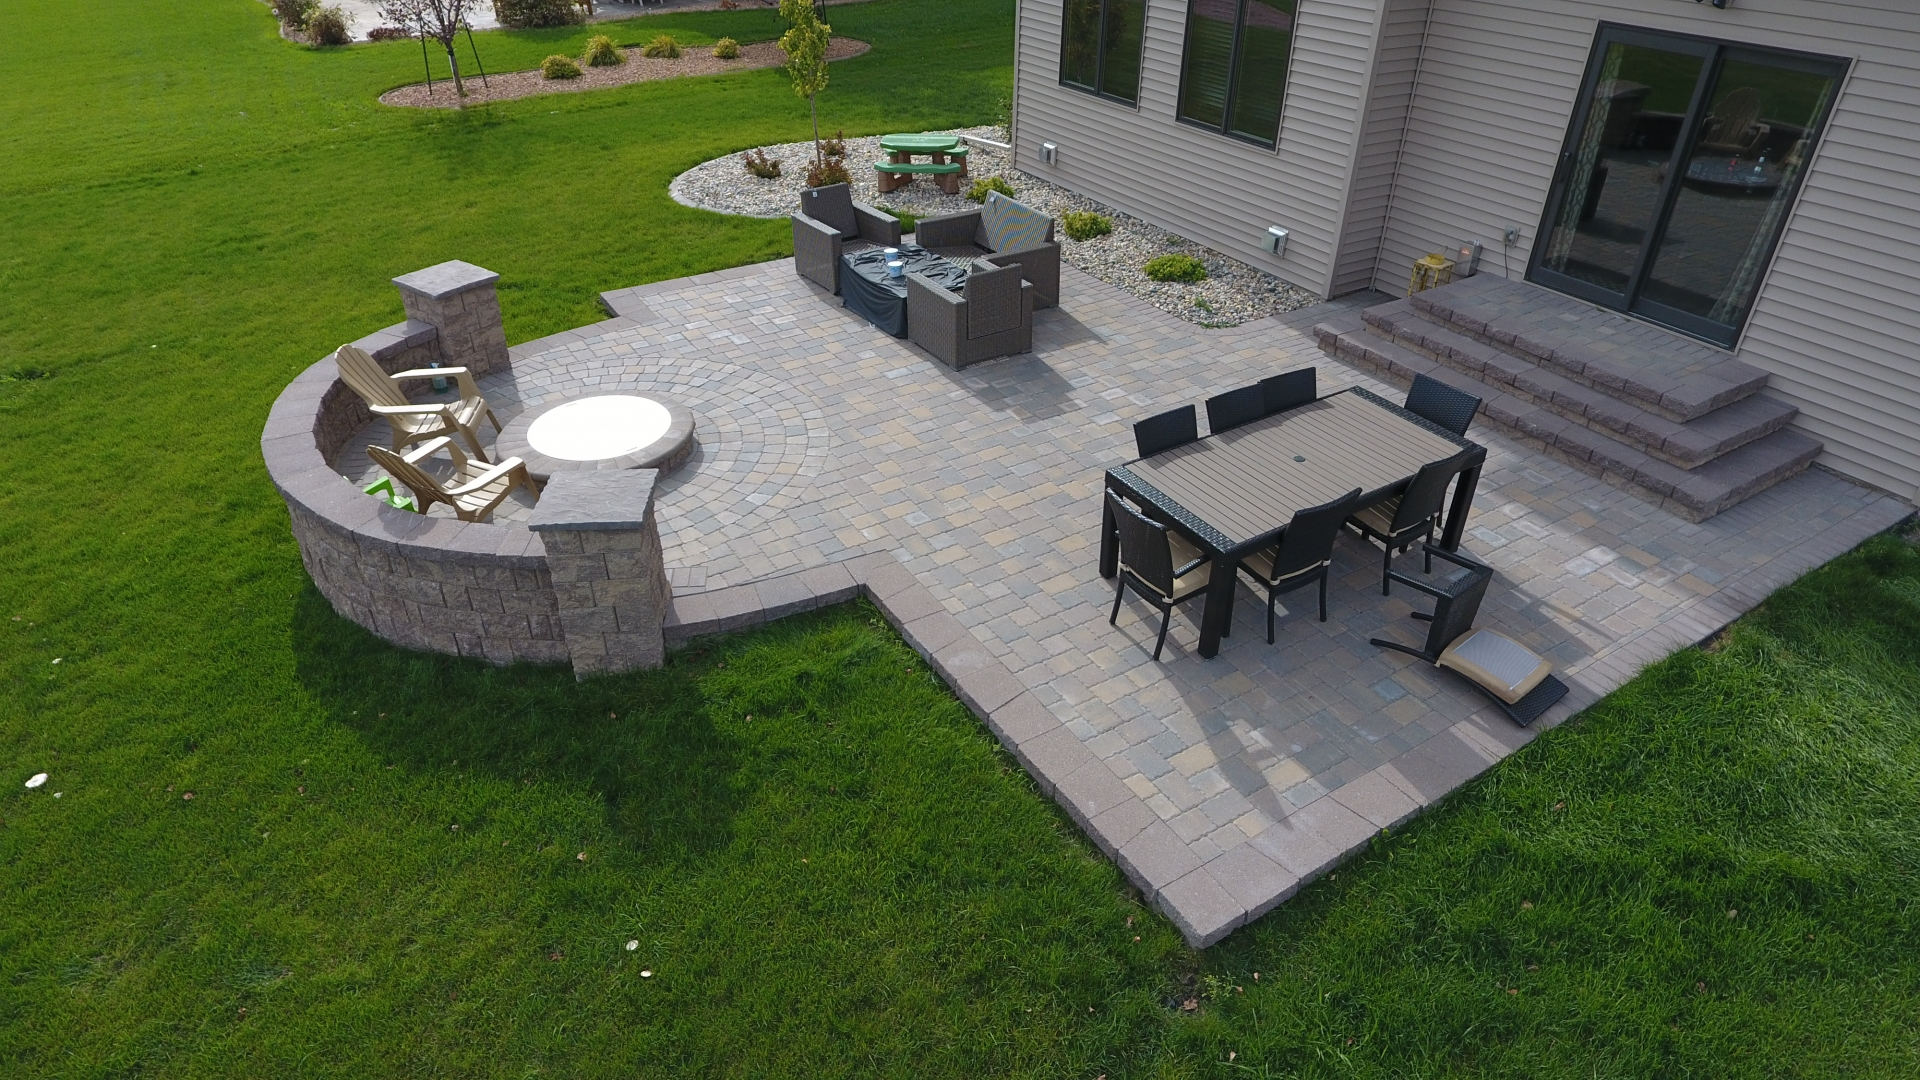 Backyard Fire Pit with Seat Wall and Paver Patio - Oasis ... on Pavers Patio With Fire Pit id=58029